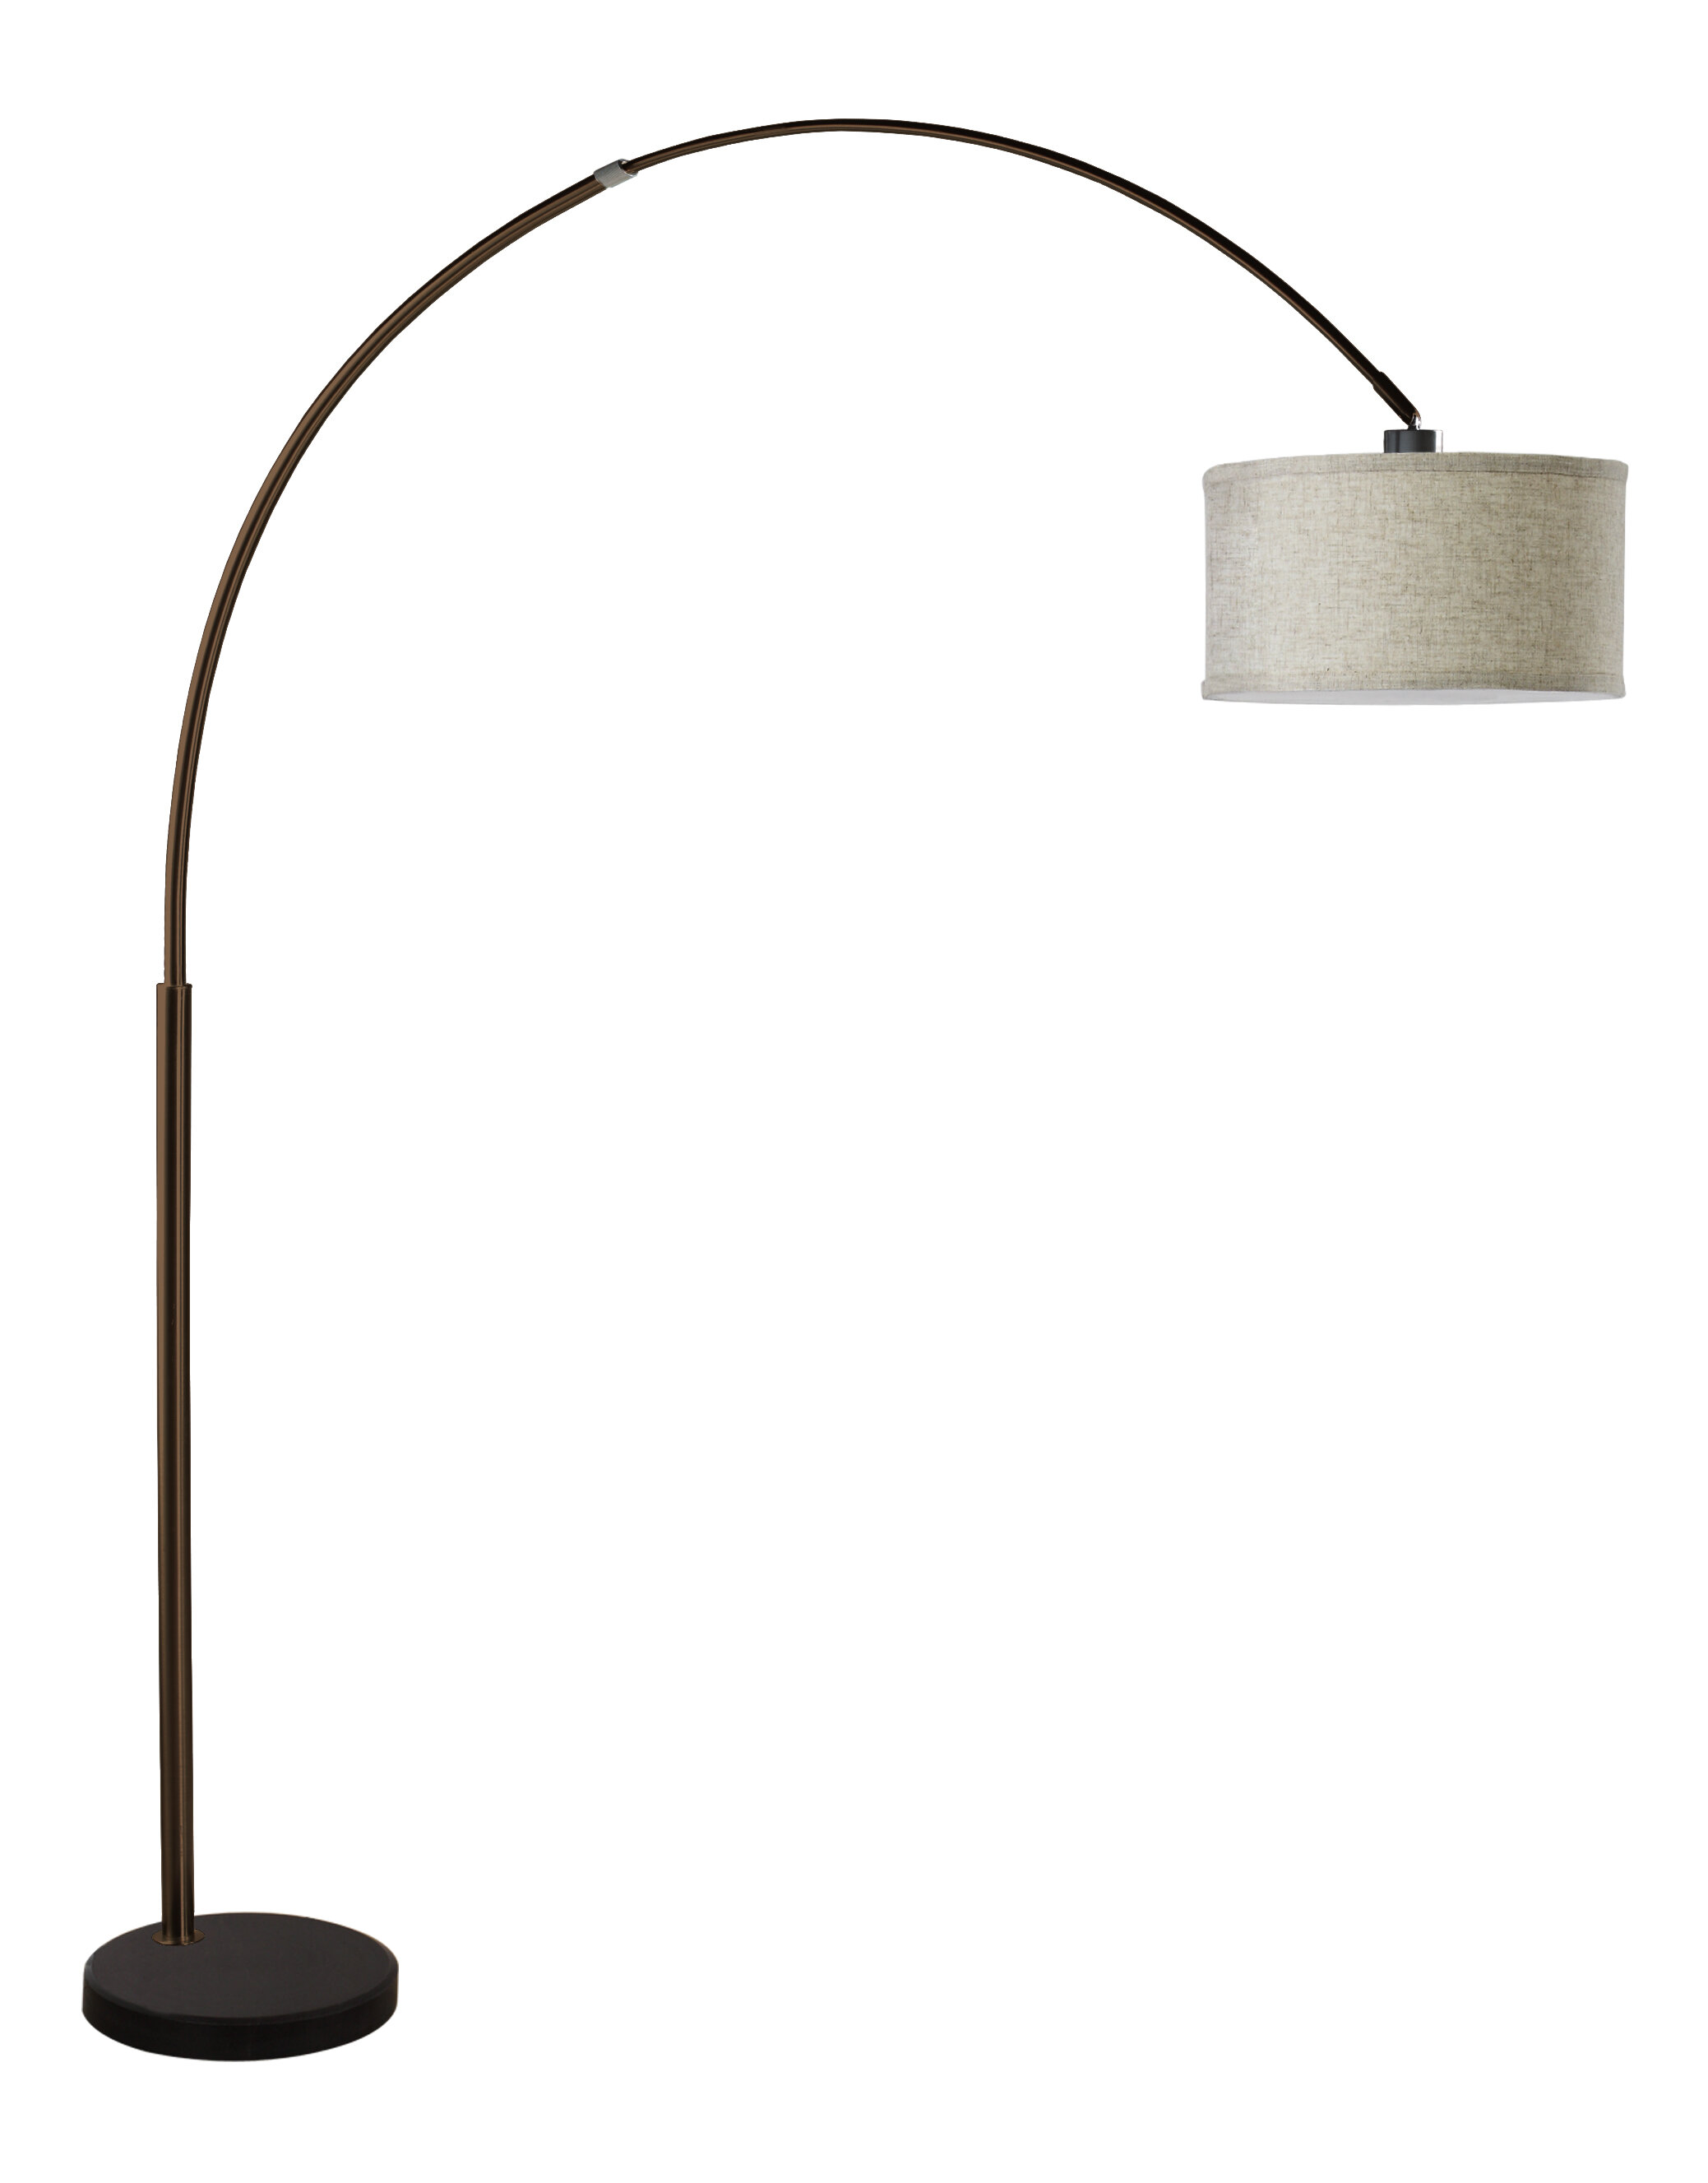 petrol floors bertil mgctlbxl mgctlbxn brisborg blue floor lamp c light nordlings mzp product mgctlbxv antik by